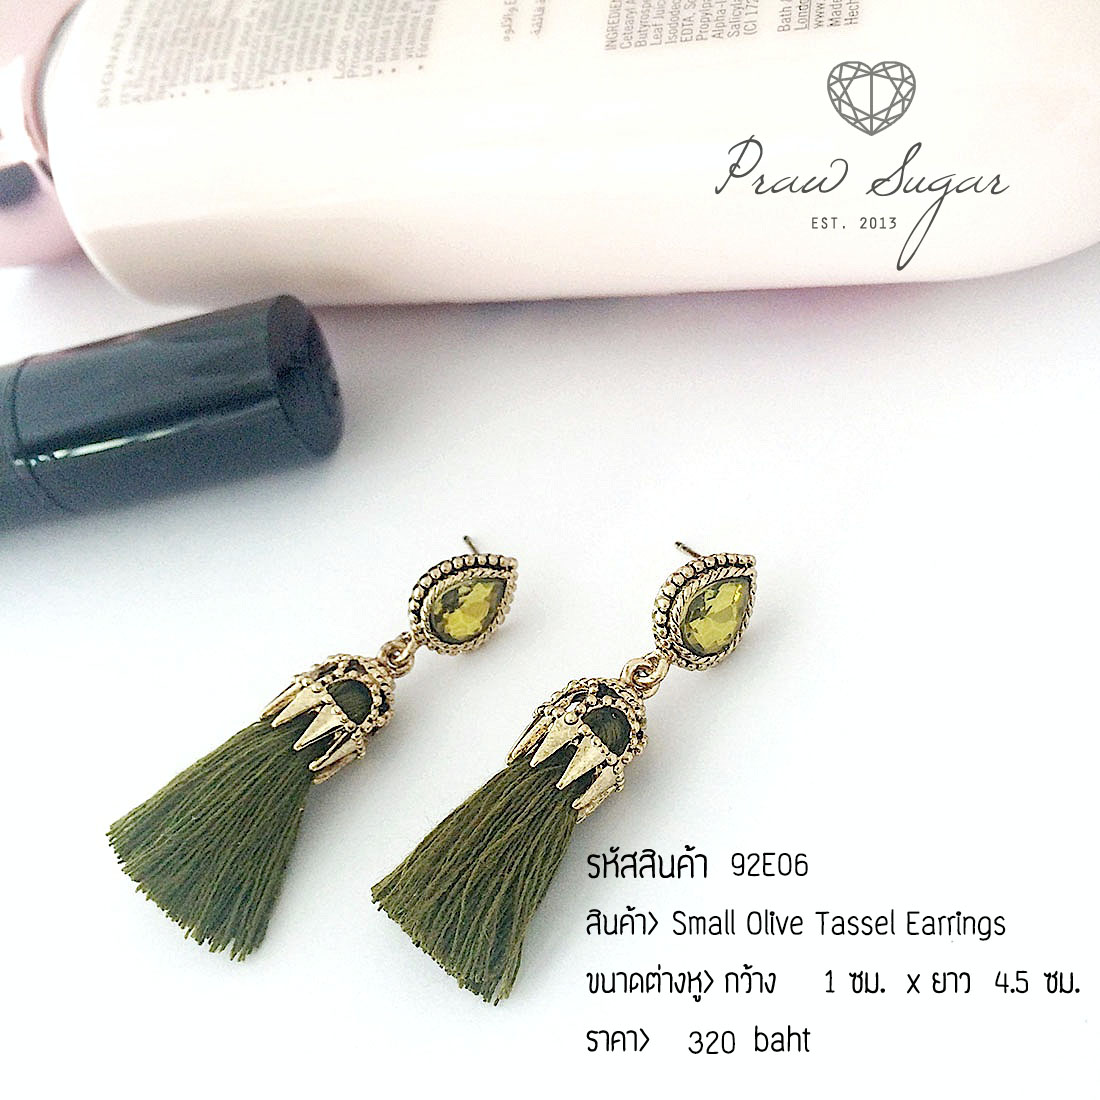 Small Olive Tassel Earrings